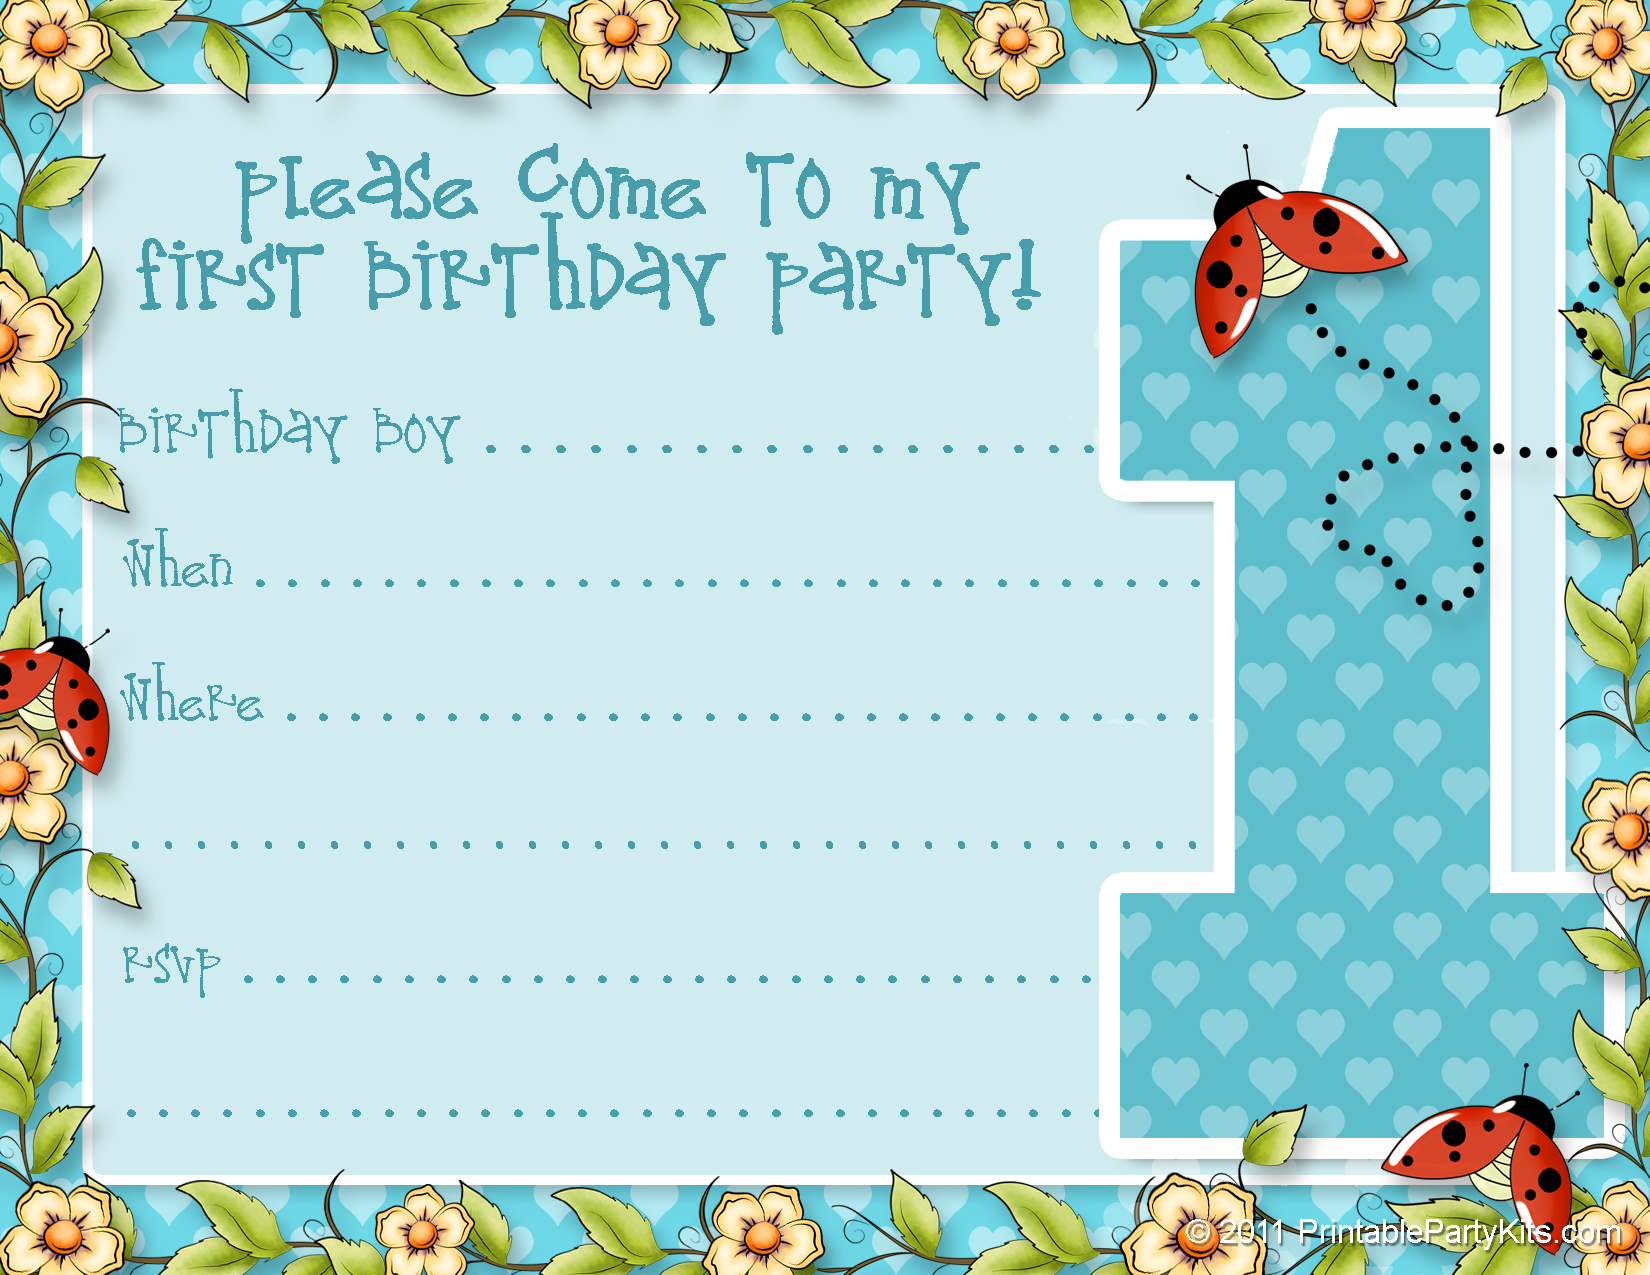 50 Free Birthday Invitation Templates You Will Love These – Free First Birthday Invitations Templates